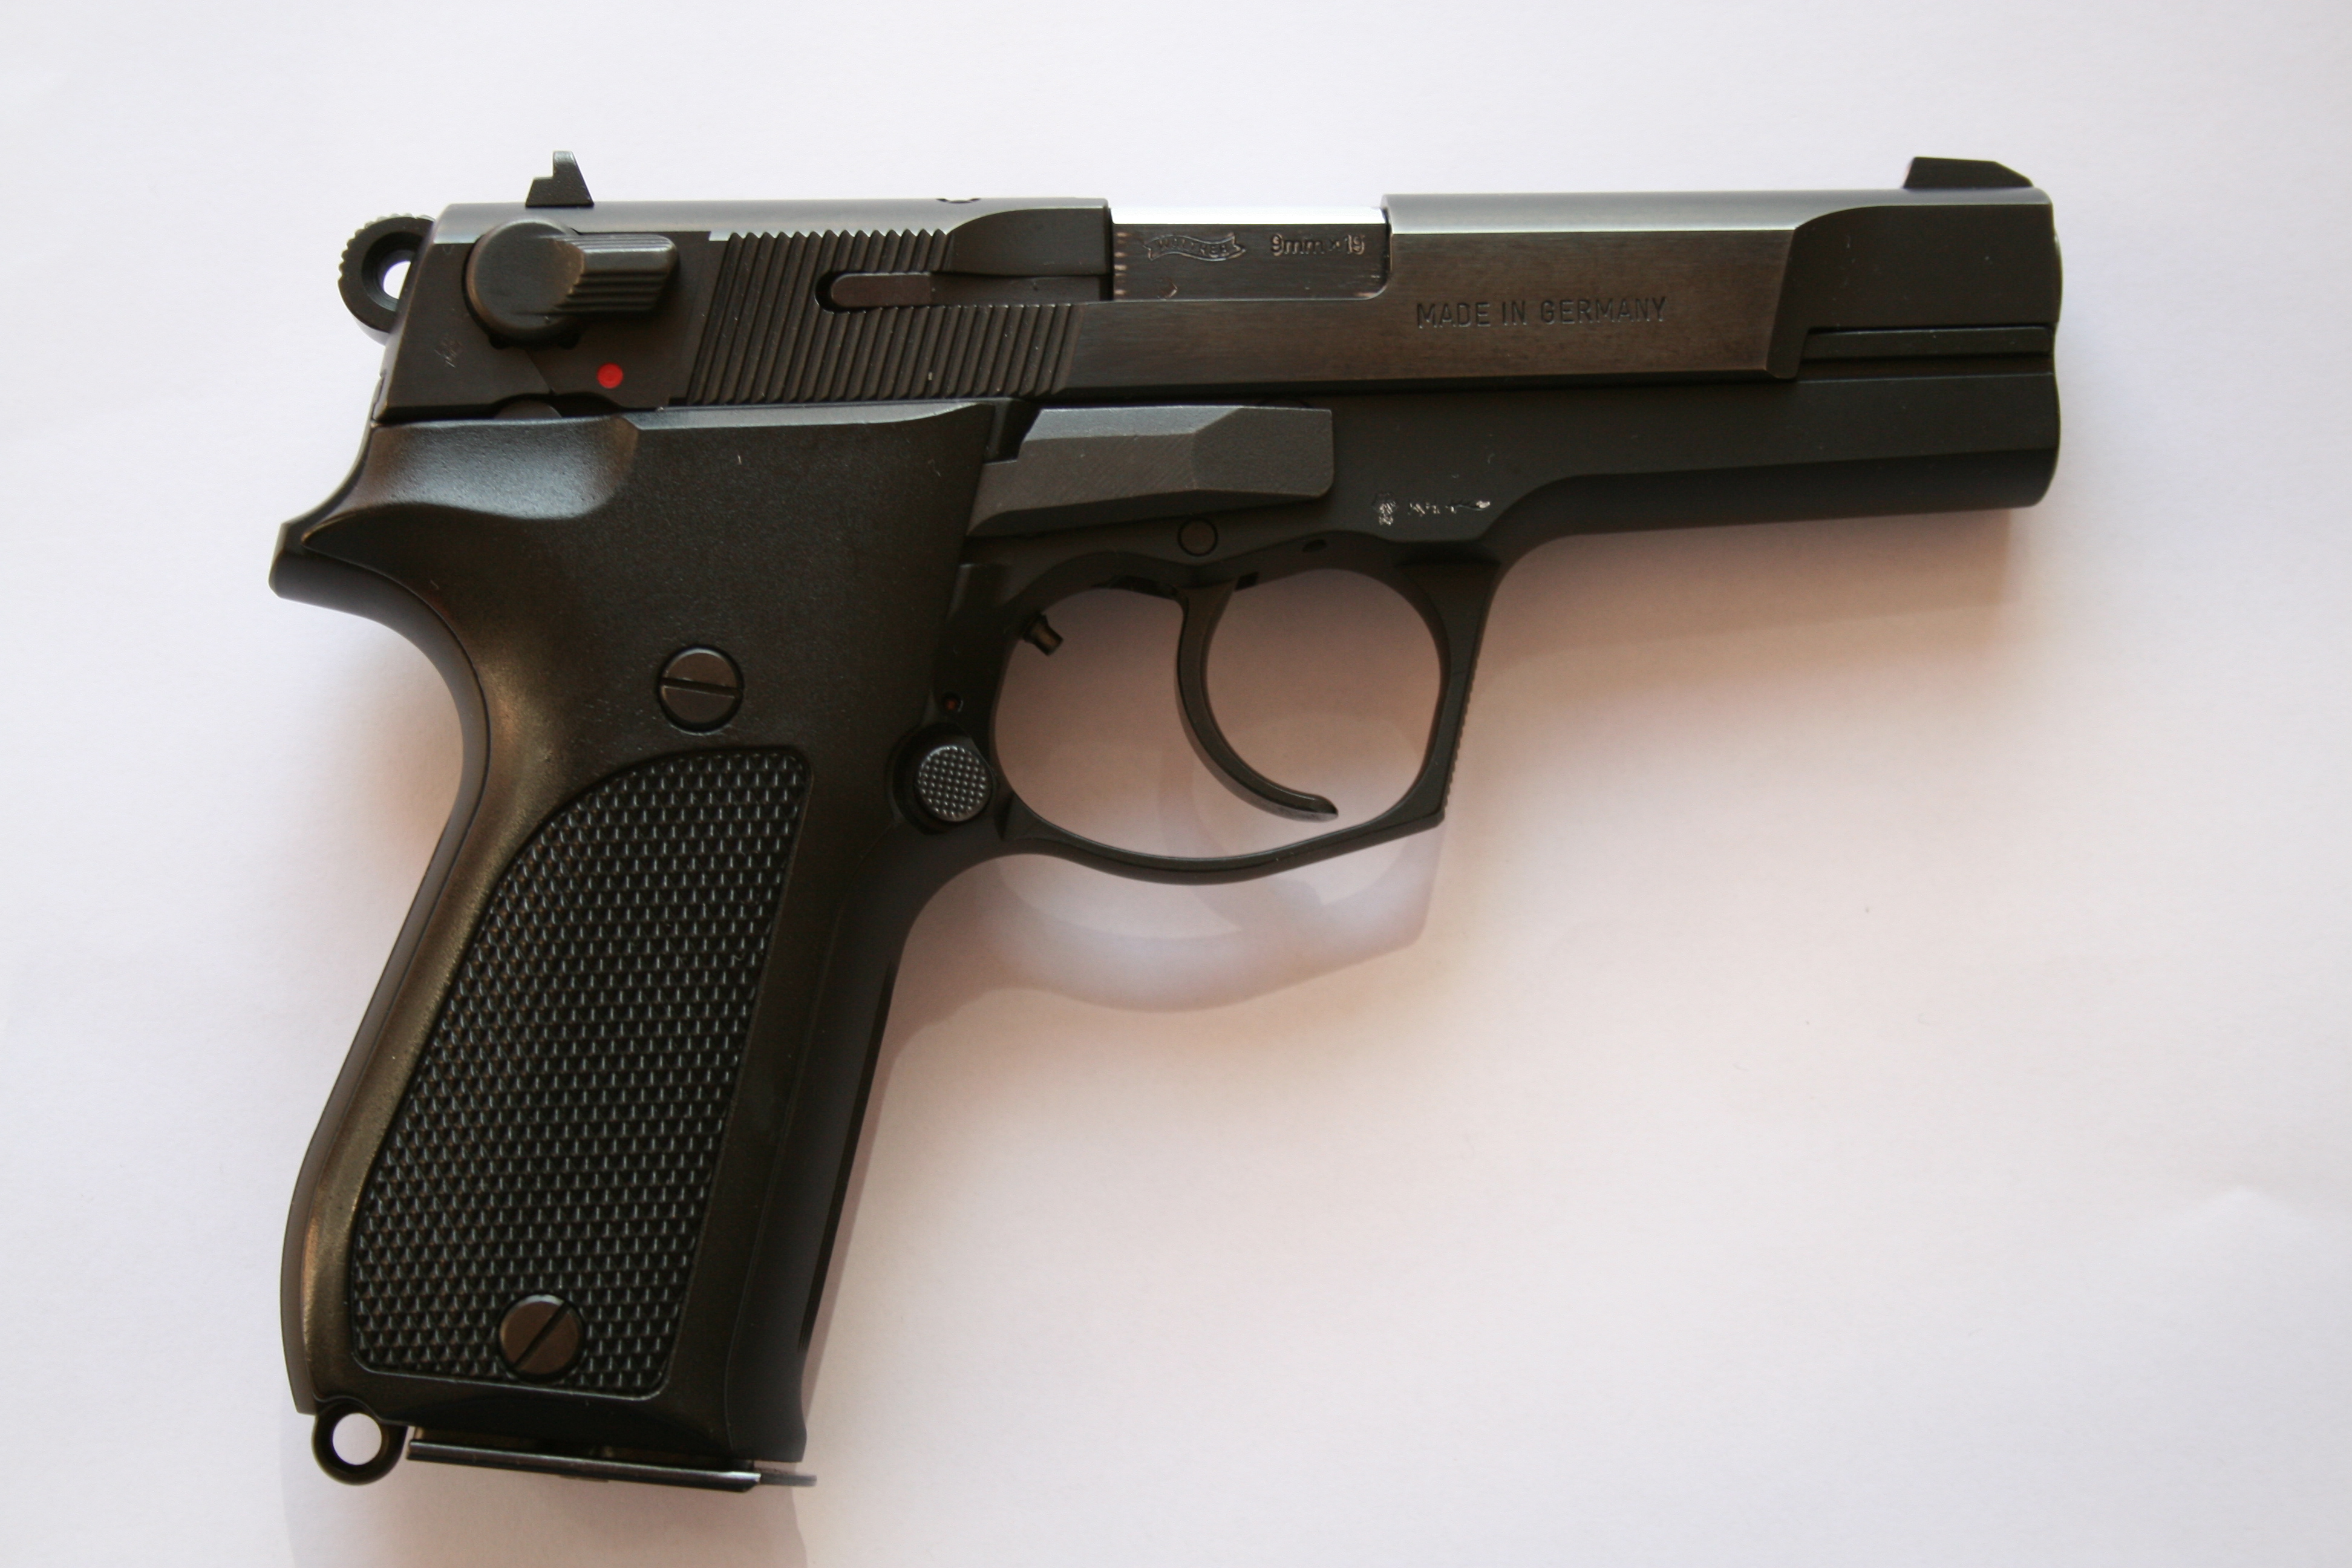 File:Walther P88 compact JPG - Wikimedia Commons